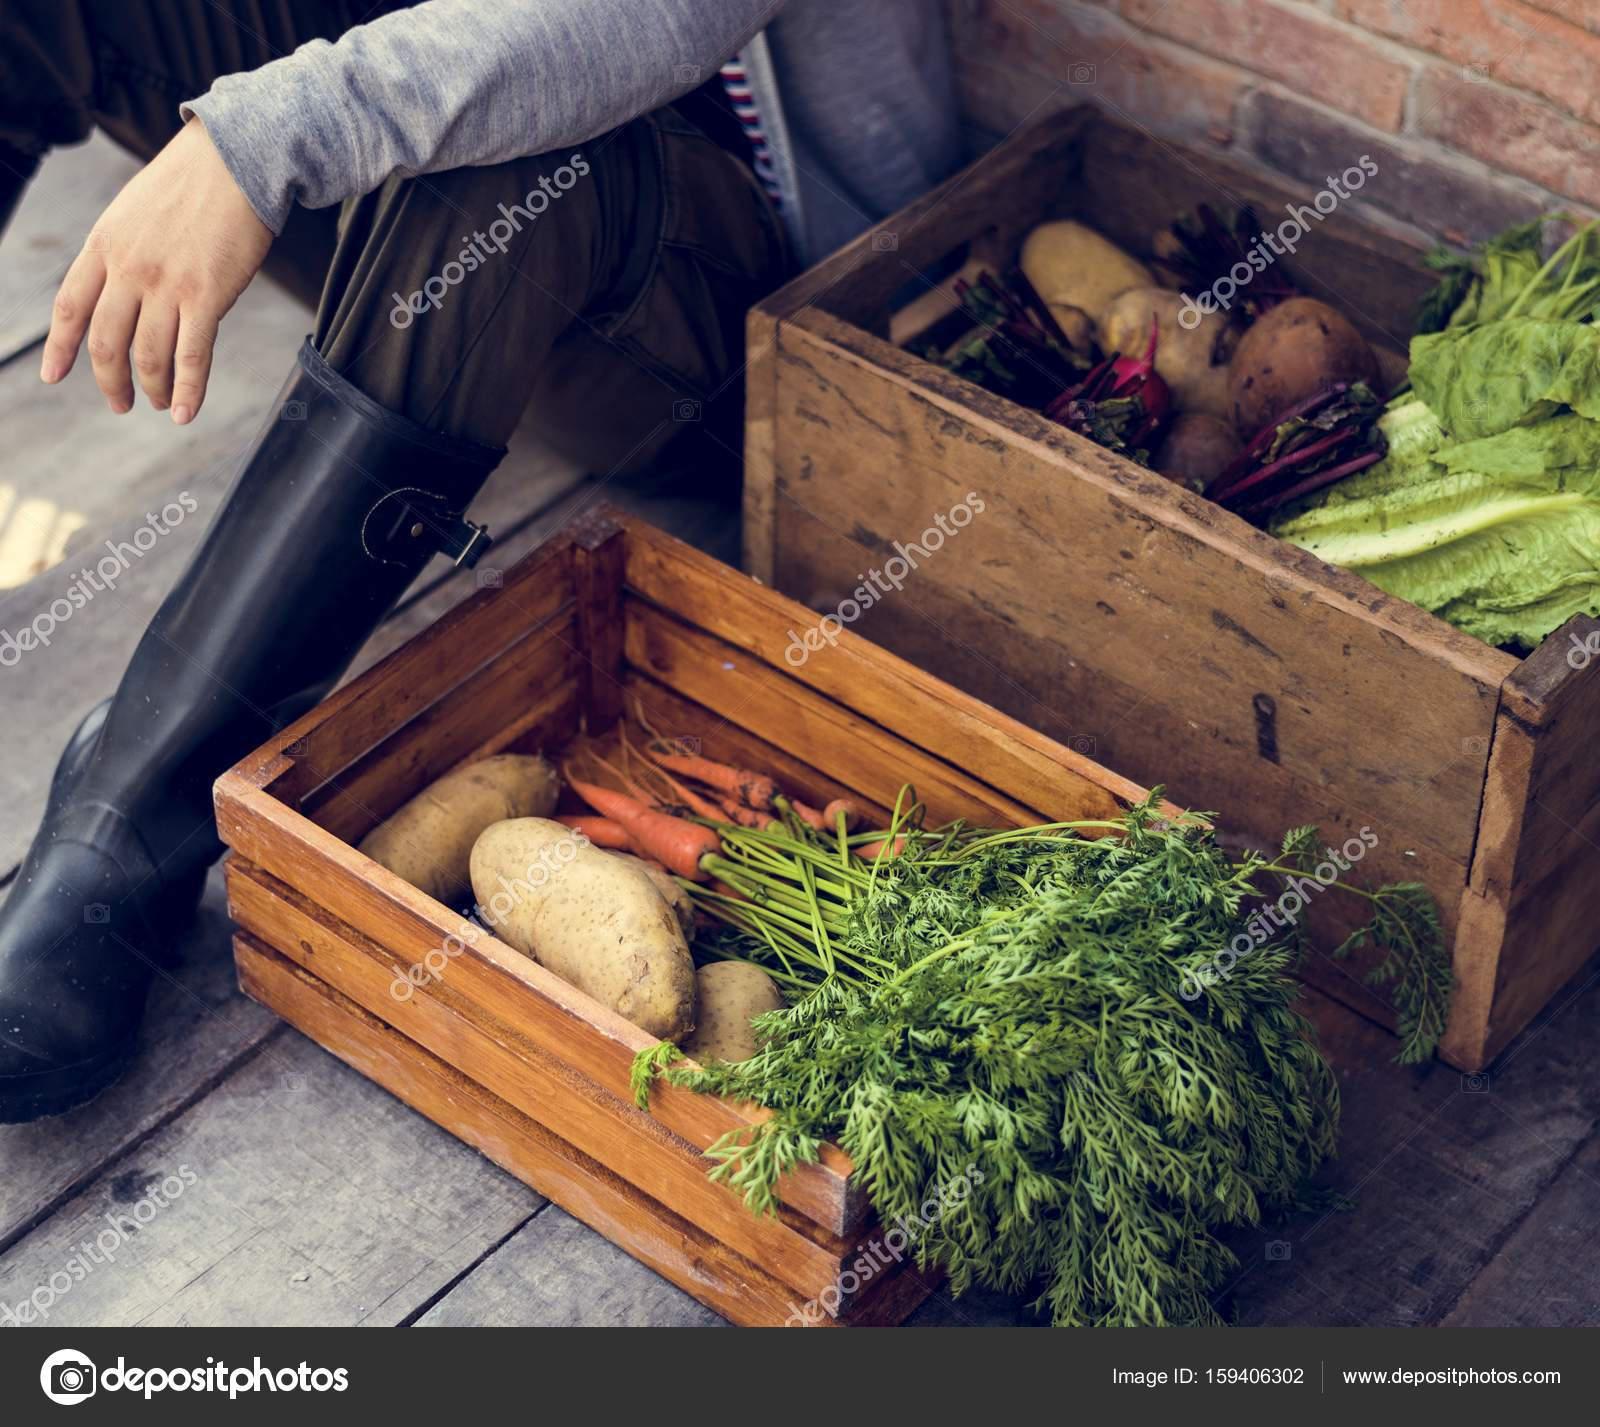 Gardener with organic agricultural products — Stock Photo © Rawpixel